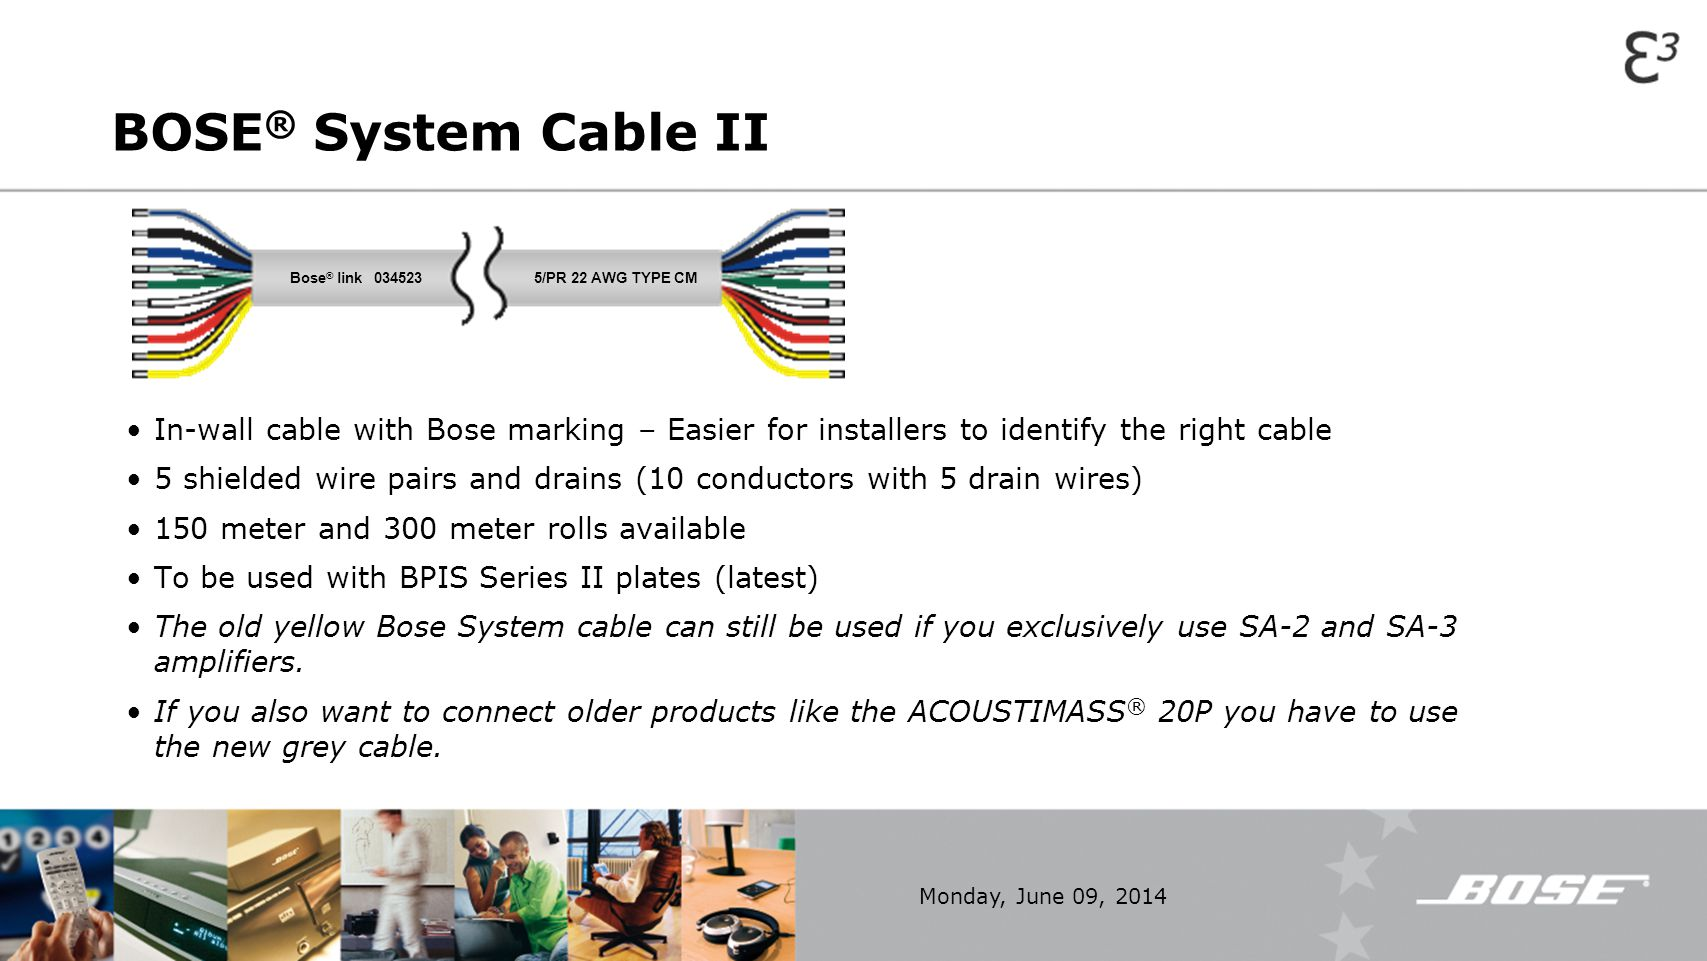 BOSE%C2%AE+System+Cable+II+Bose%C2%AE+link+034523.+5%2FPR+22+AWG+TYPE+CM.+In wall+cable+with+Bose+marking+%E2%80%93+Easier+for+installers+to+identify+the+right+cable. bose� link music throughout your home ppt video online download Bose Amplifier Wiring Diagram at mifinder.co